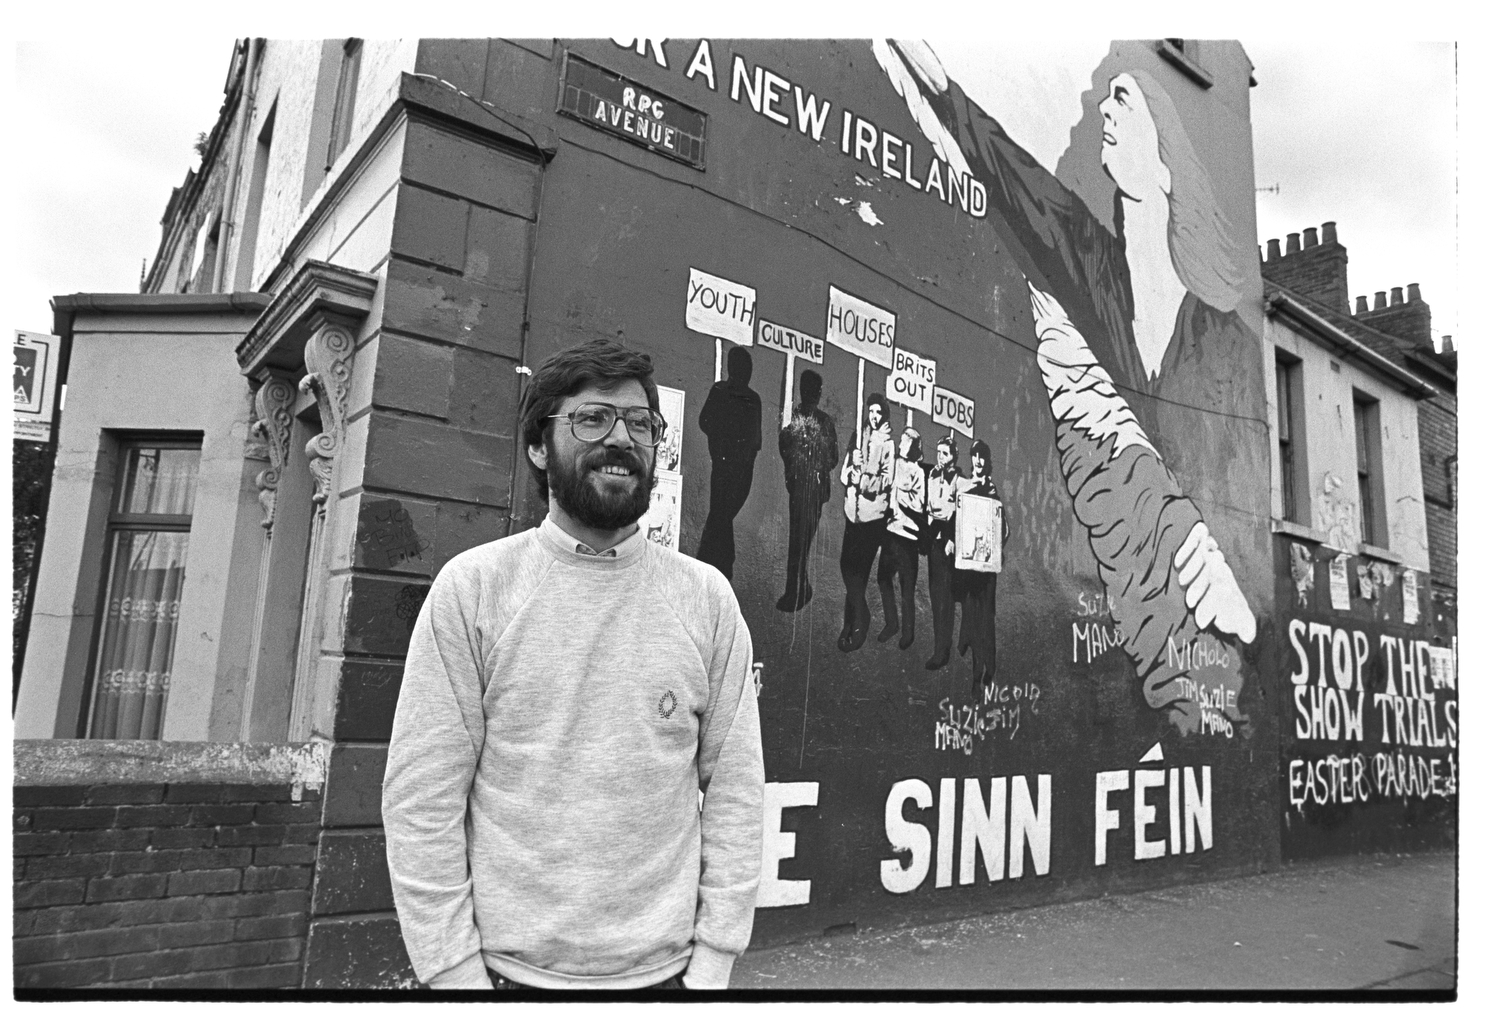 Gerry Adams, president of Sinn Fein, posing in front of a Sinn Fein republican wall mural in Belfast, Northern Ireland, mid-1980s.